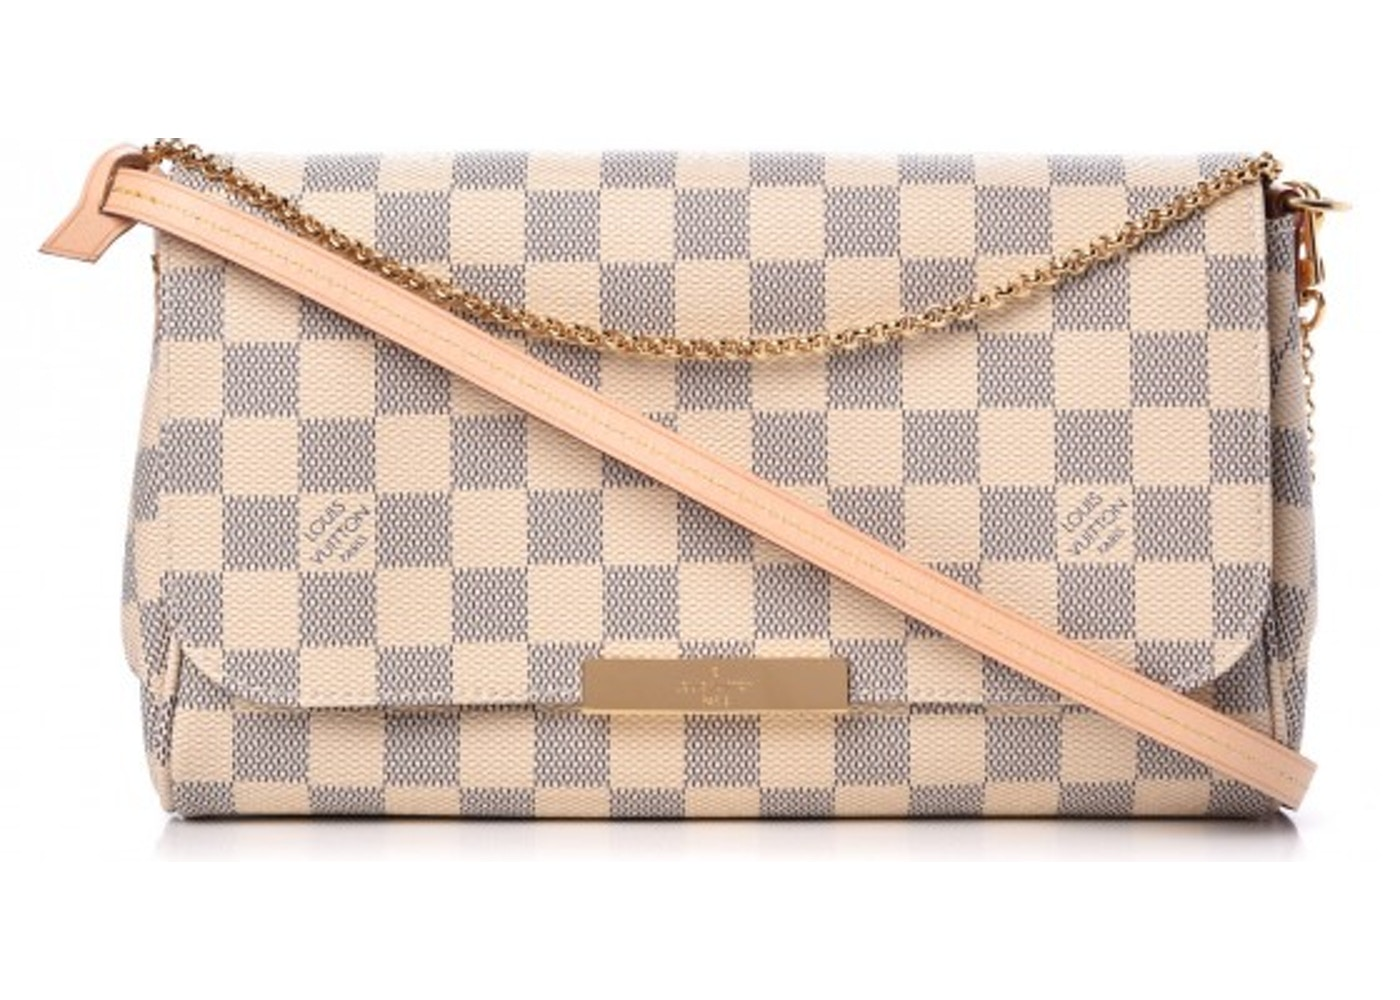 4689f5febab8 Louis Vuitton Favorite Damier Azur MM Ivorie Grey. Damier Azur MM Ivorie  Grey